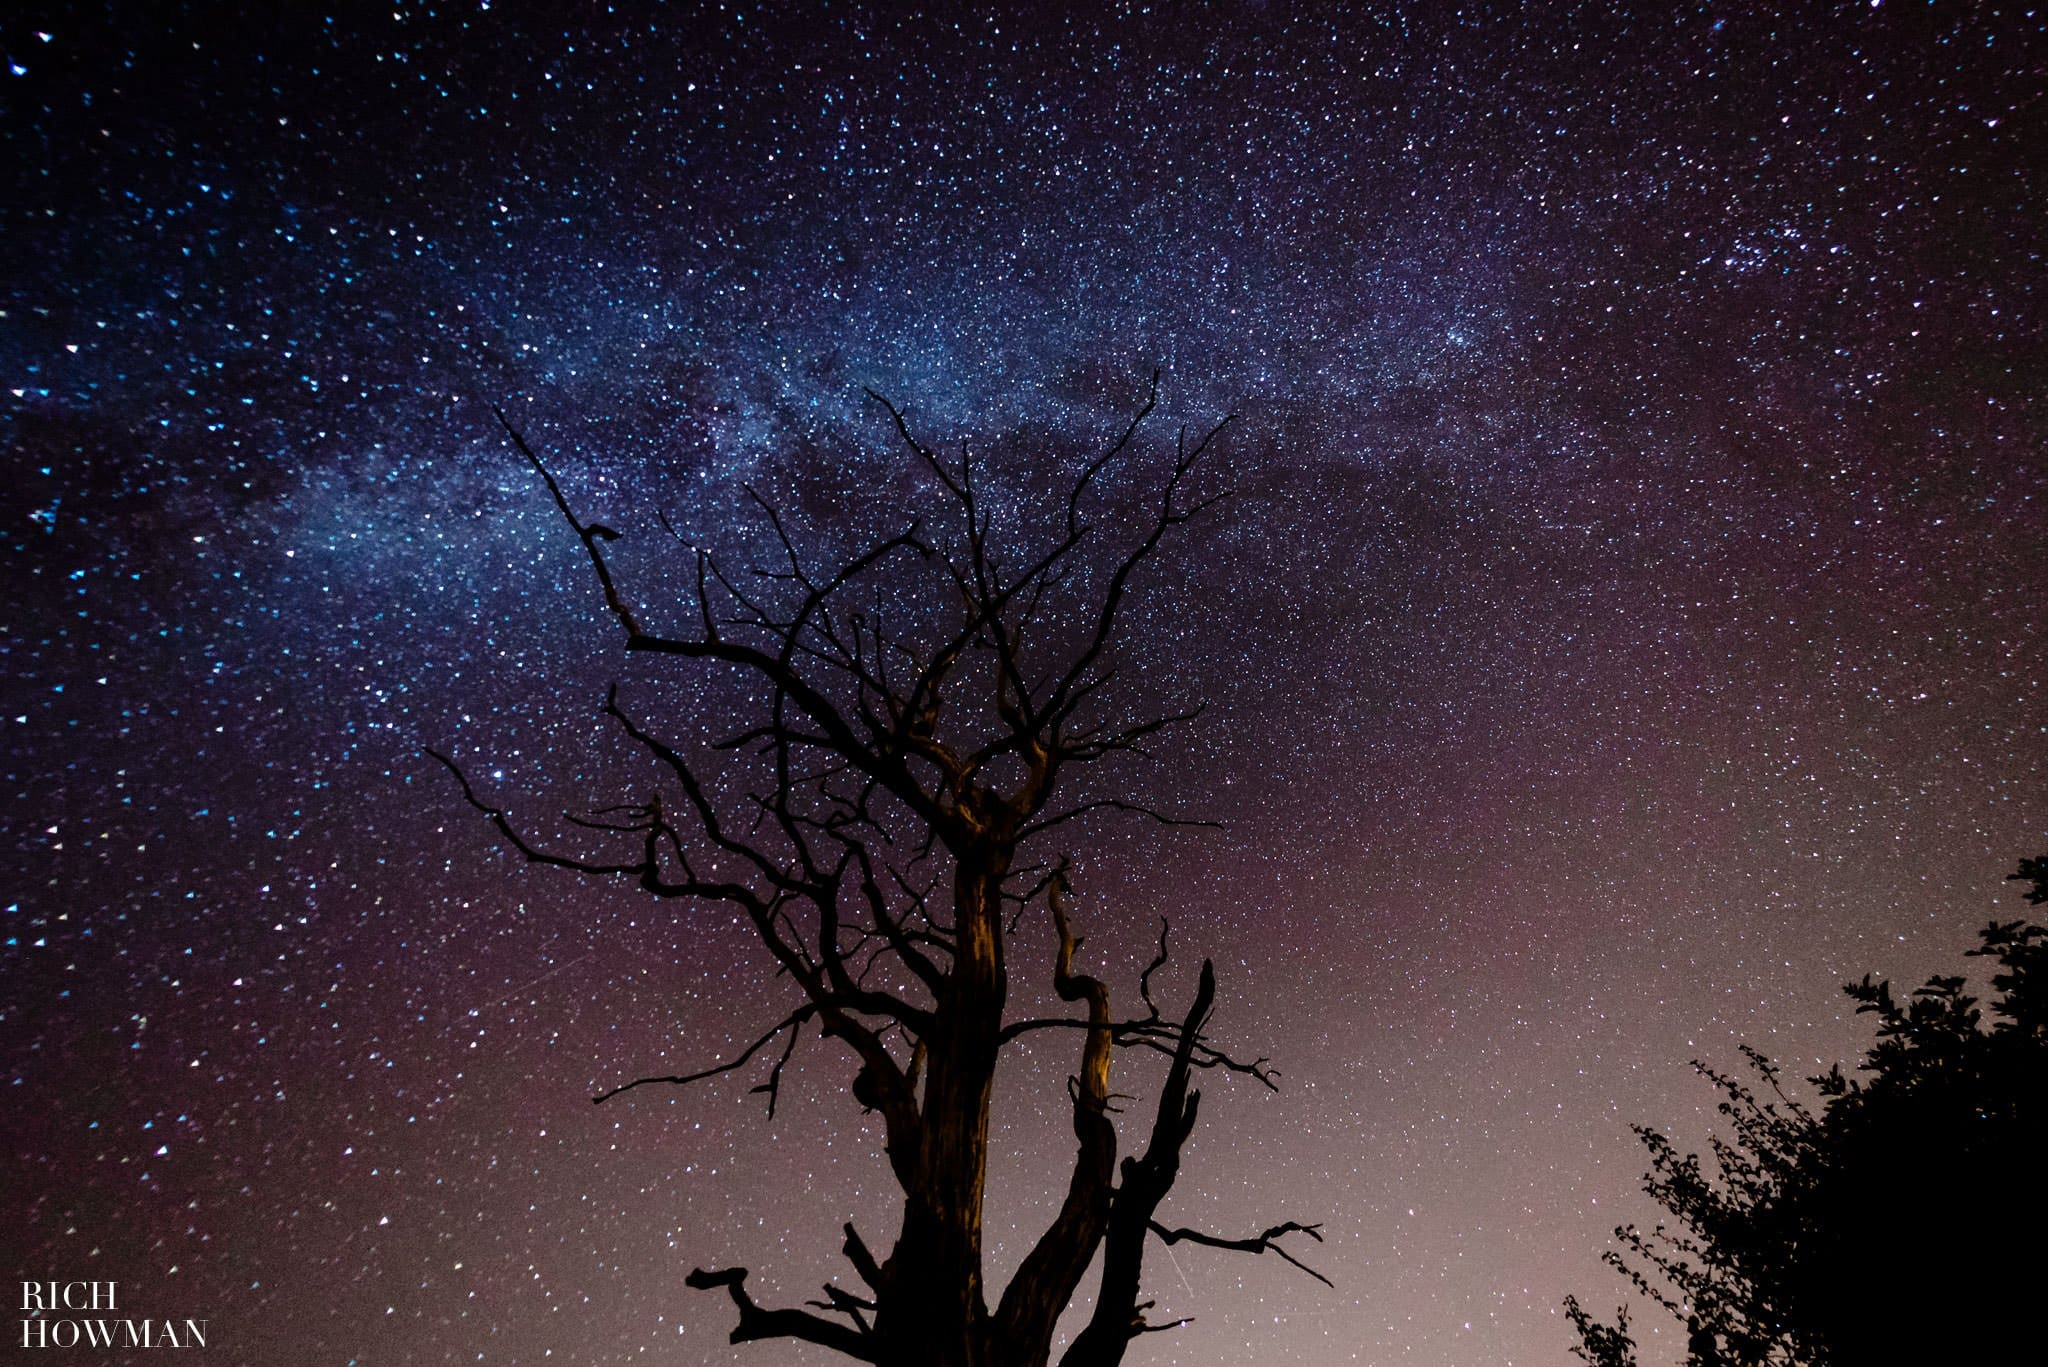 photo of the milky way with tree in foreground